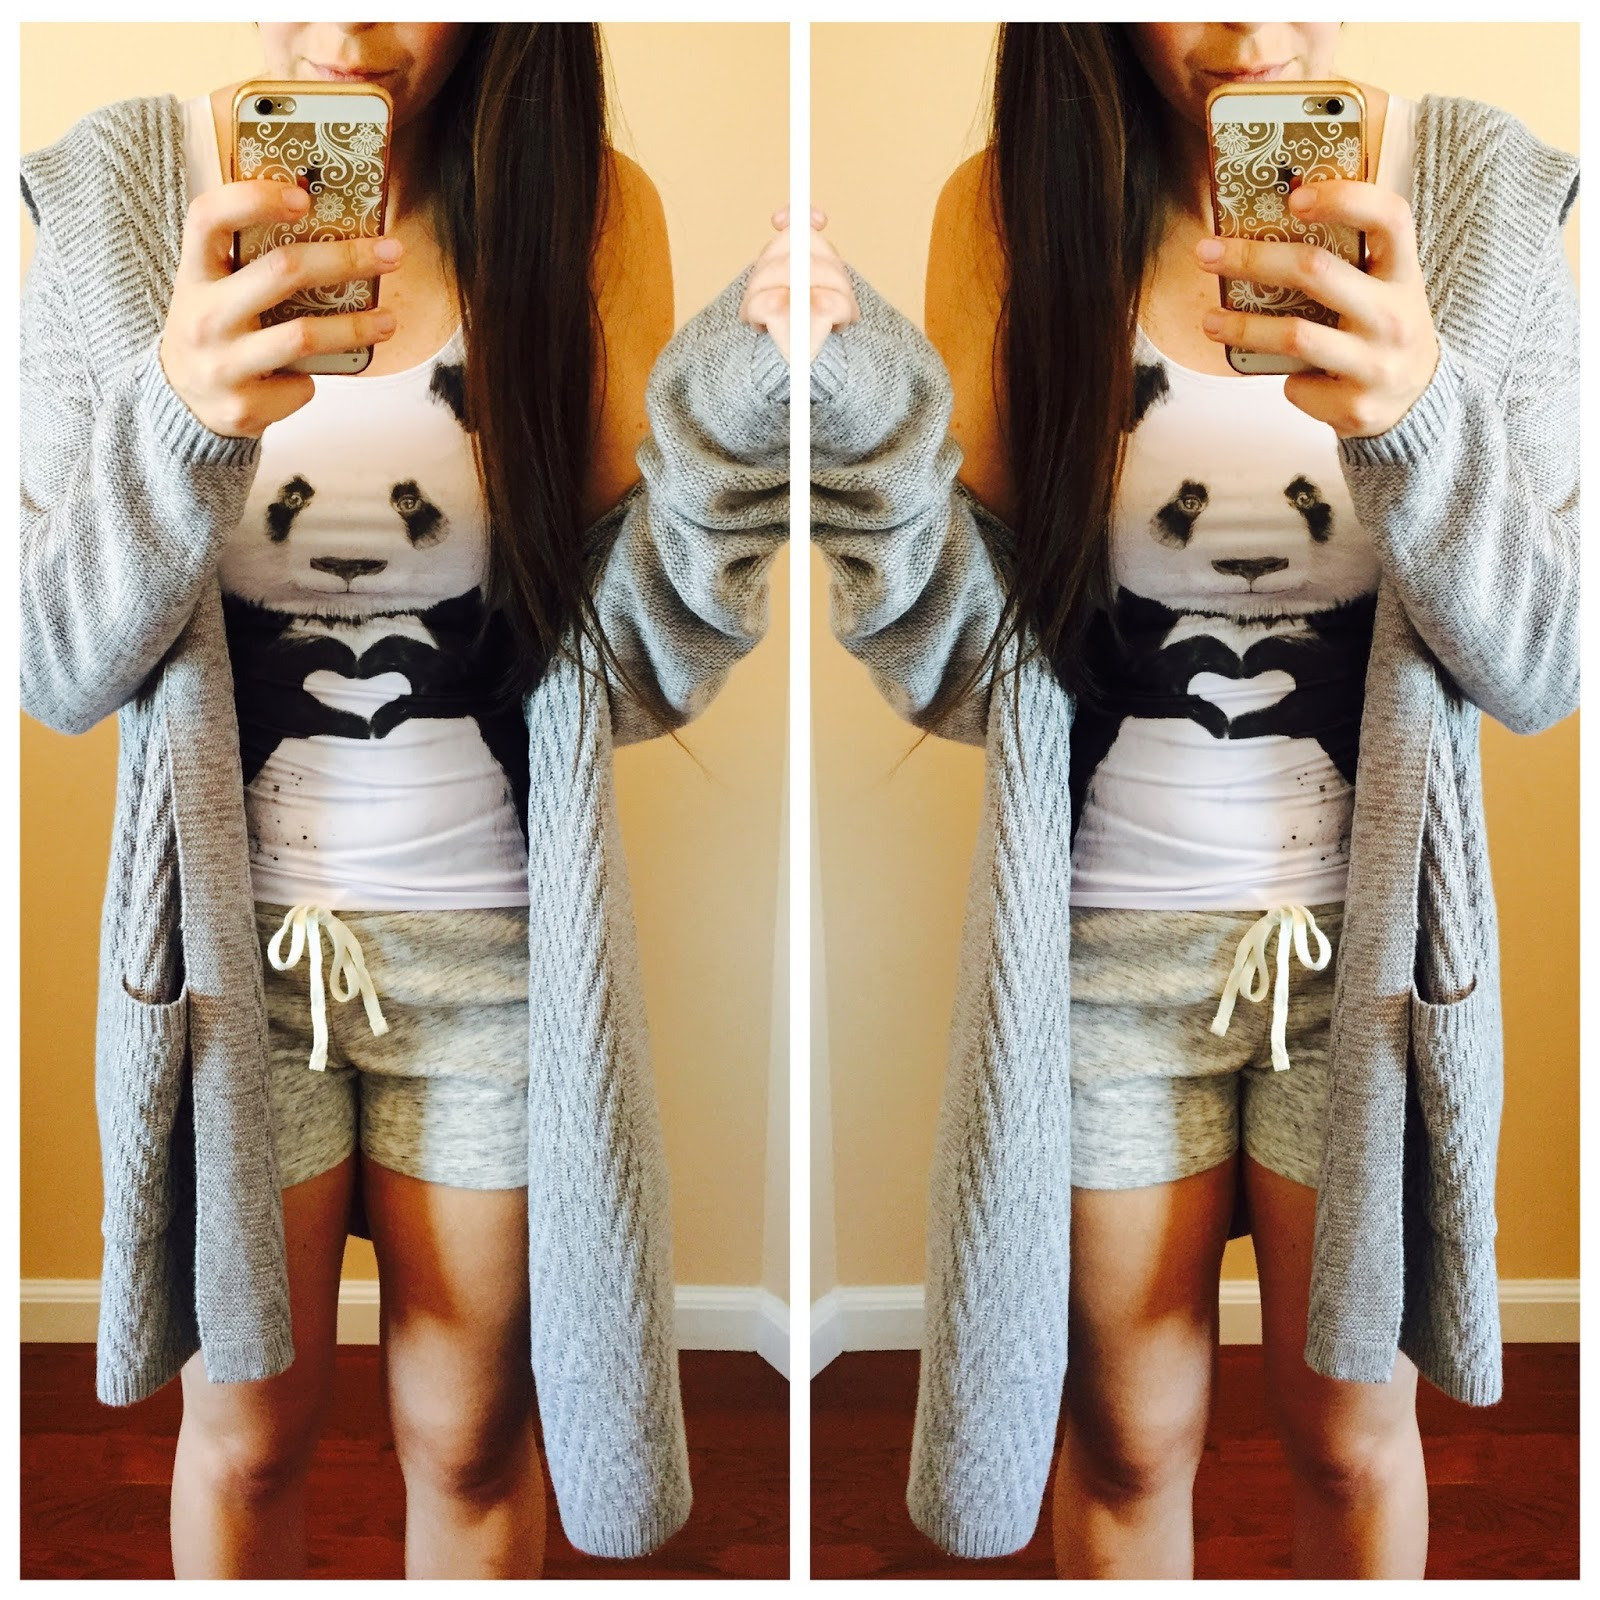 college wear, lounge wear, panda tank top, pinkcess, pinkcess tank top, panda tank,